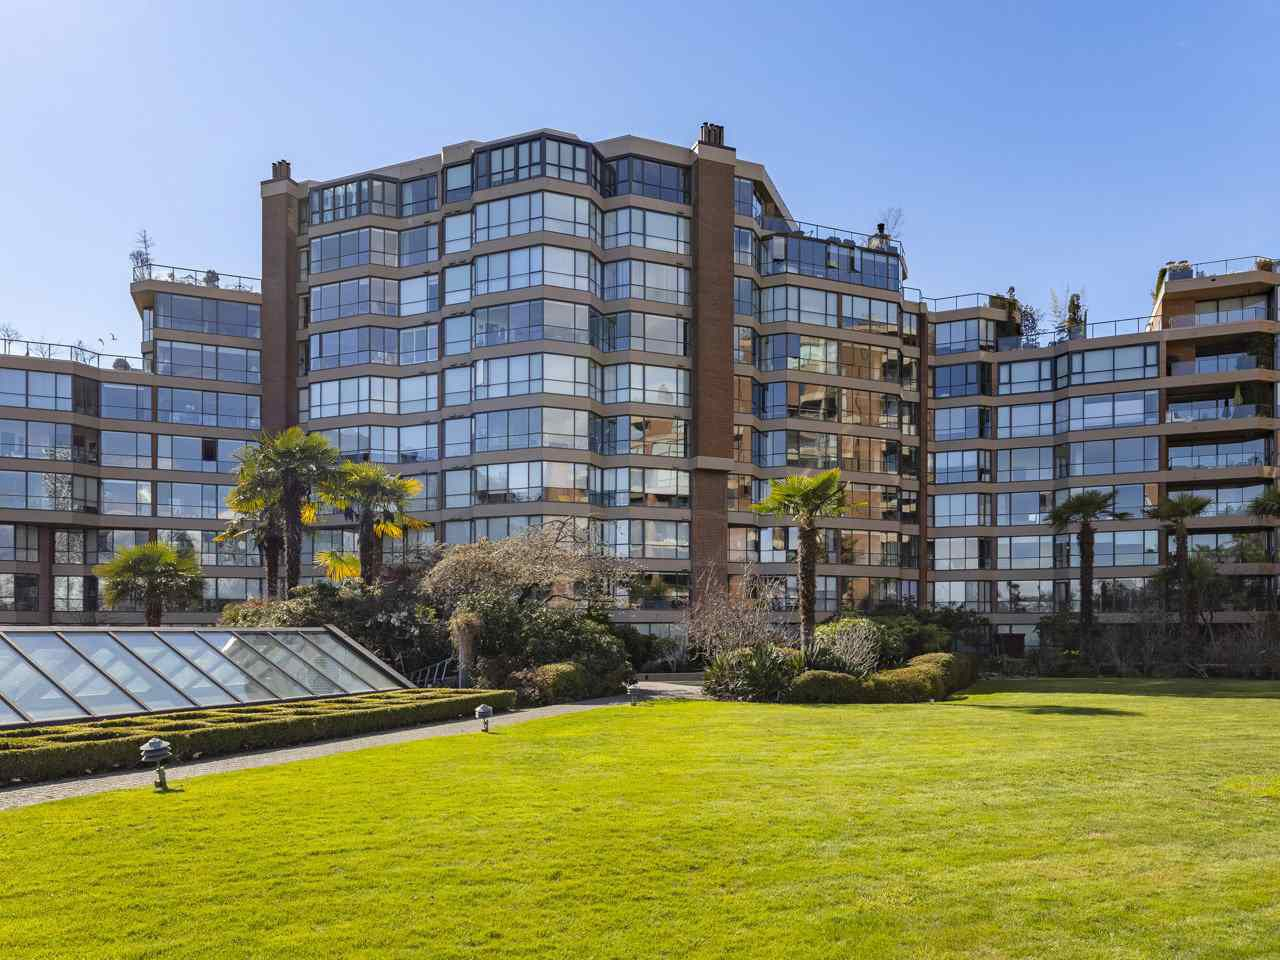 """Main Photo: 605 1490 PENNYFARTHING Drive in Vancouver: False Creek Condo for sale in """"Harbour Cove Three"""" (Vancouver West)  : MLS®# R2352893"""